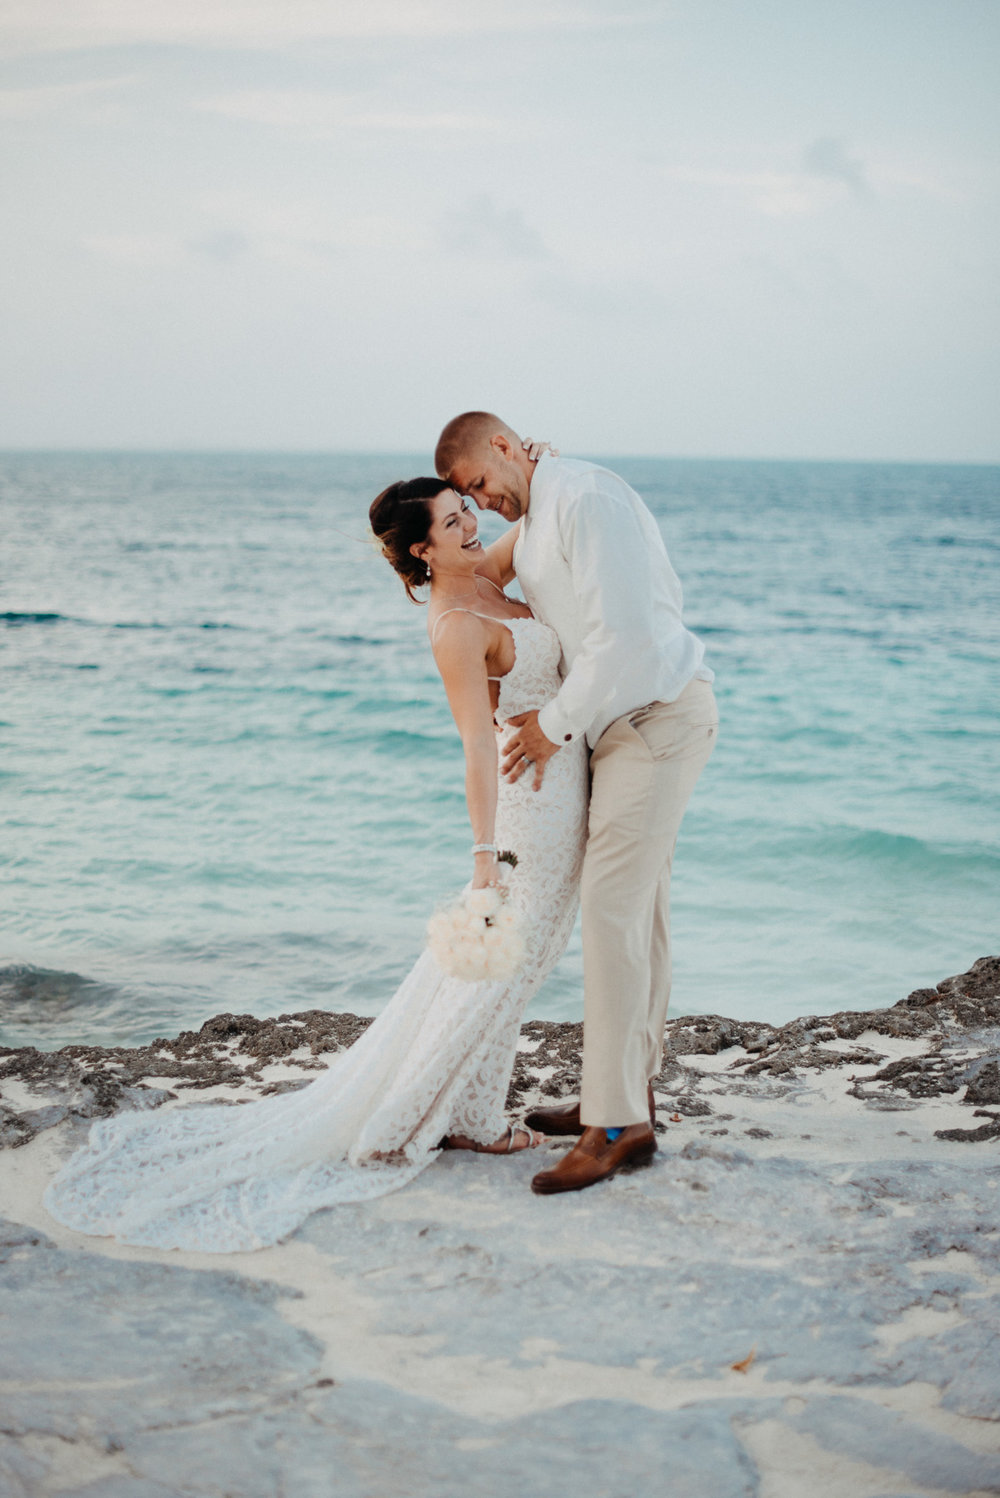 Tony and Julia eloped in Mexico and I was thrilled to be a part of it. They stayed at the Hard Rock Hotel in Cancun and I was able to get to know all their friends and family. Woody and I felt extremely welcome! We toured Tulum while we were there, and managed to get some awesome beach wedding photos. Mexico is definitely one of my favorite places for destination weddings! Copyright: Teresa Woodhull Mexico Destination and Elopement Photographer